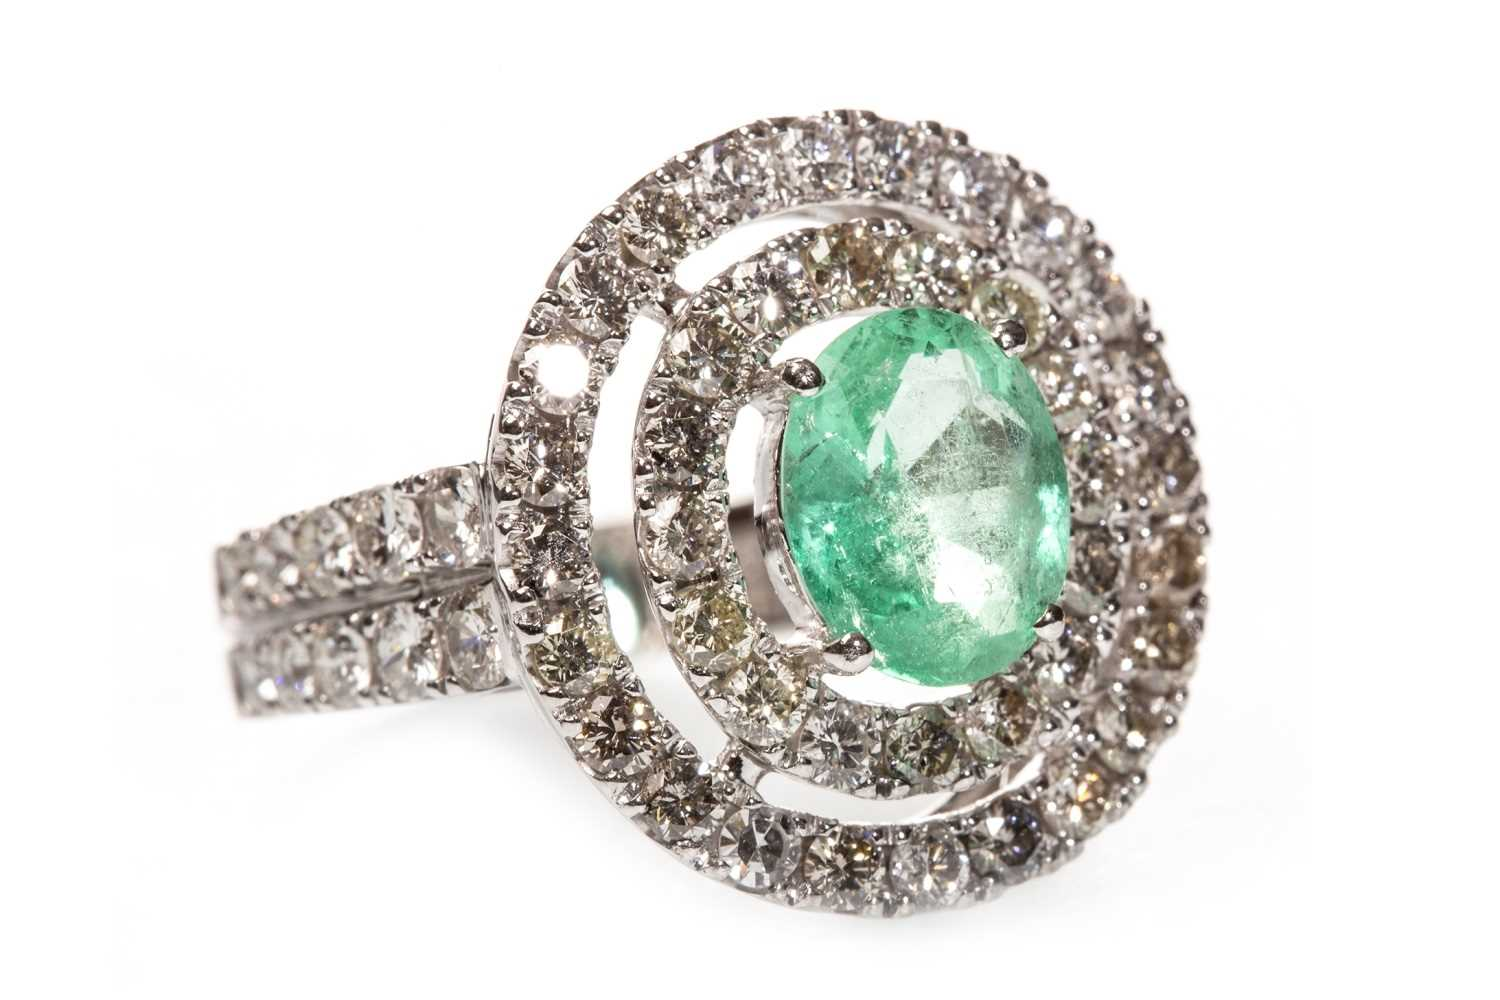 Lot 98-A CERTIFICATED COLOMBIAN EMERALD AND DIAMOND CLUSTER RING